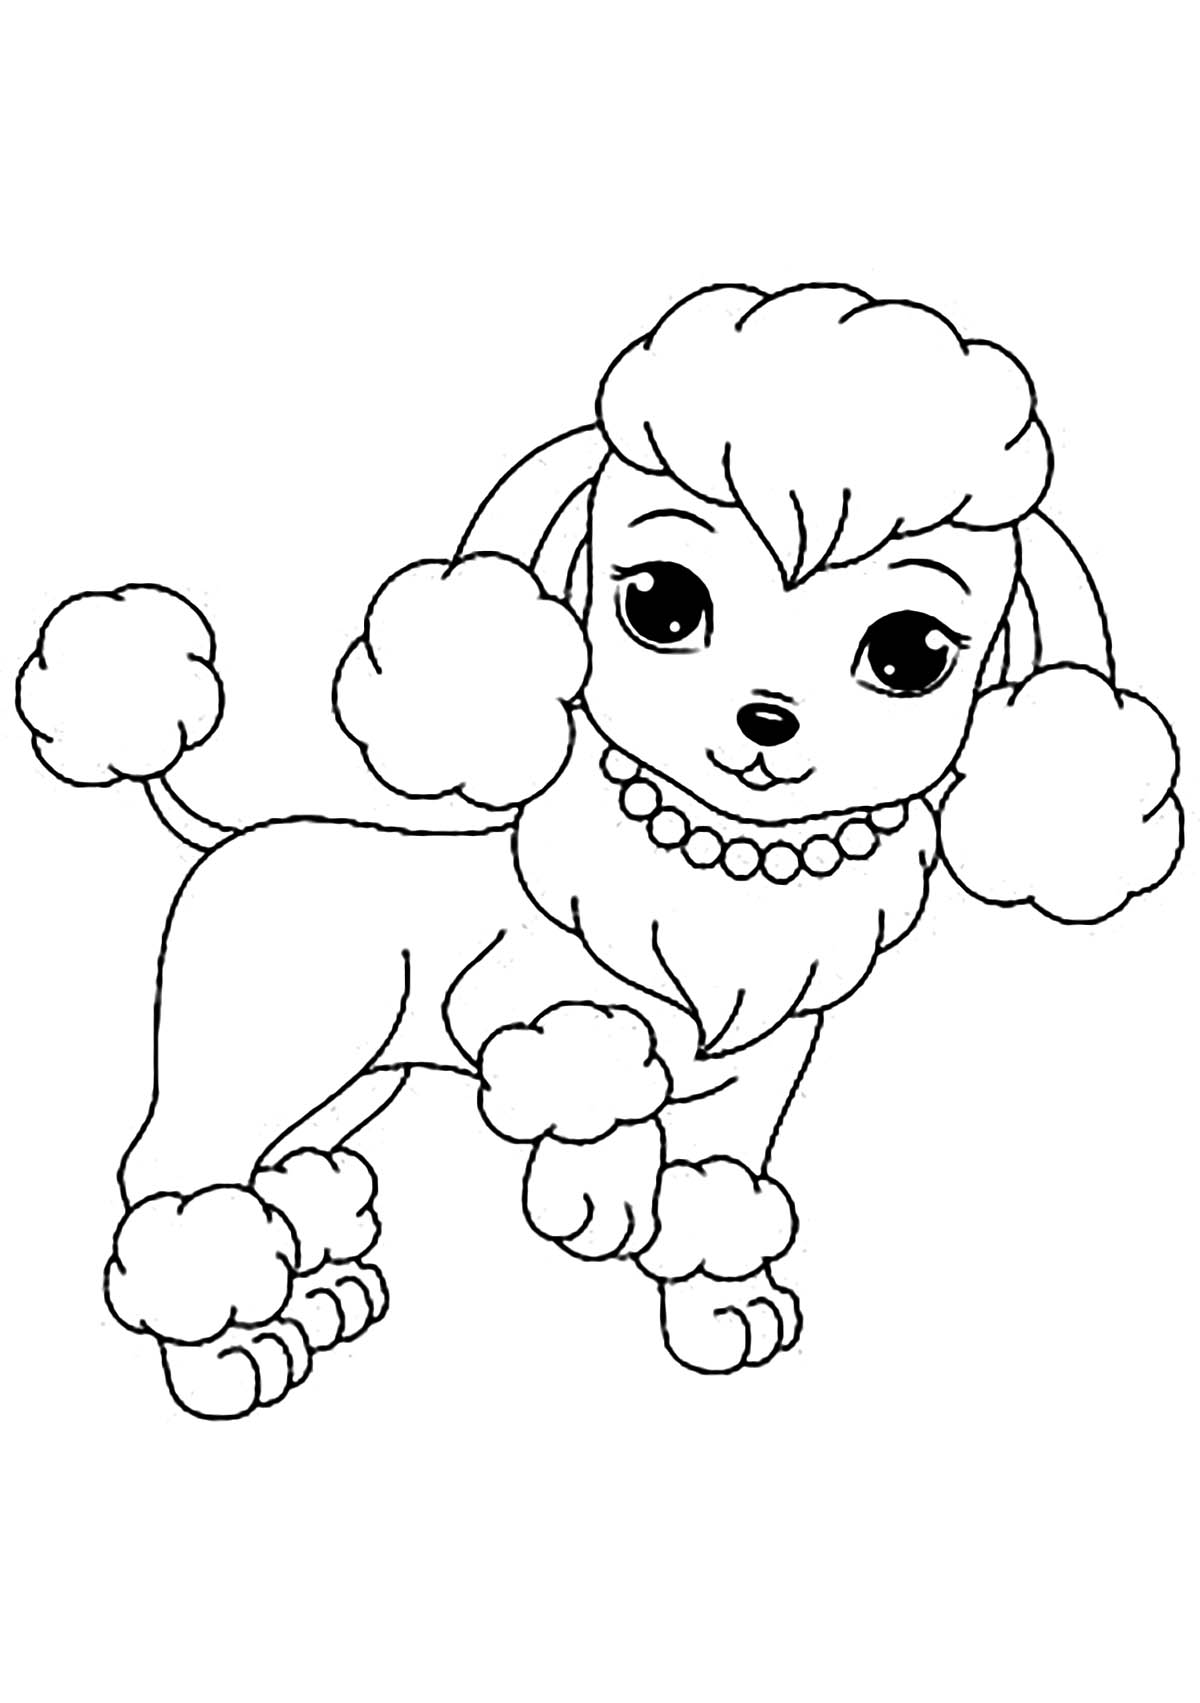 dog coloring picture dog breed coloring pages coloring picture dog